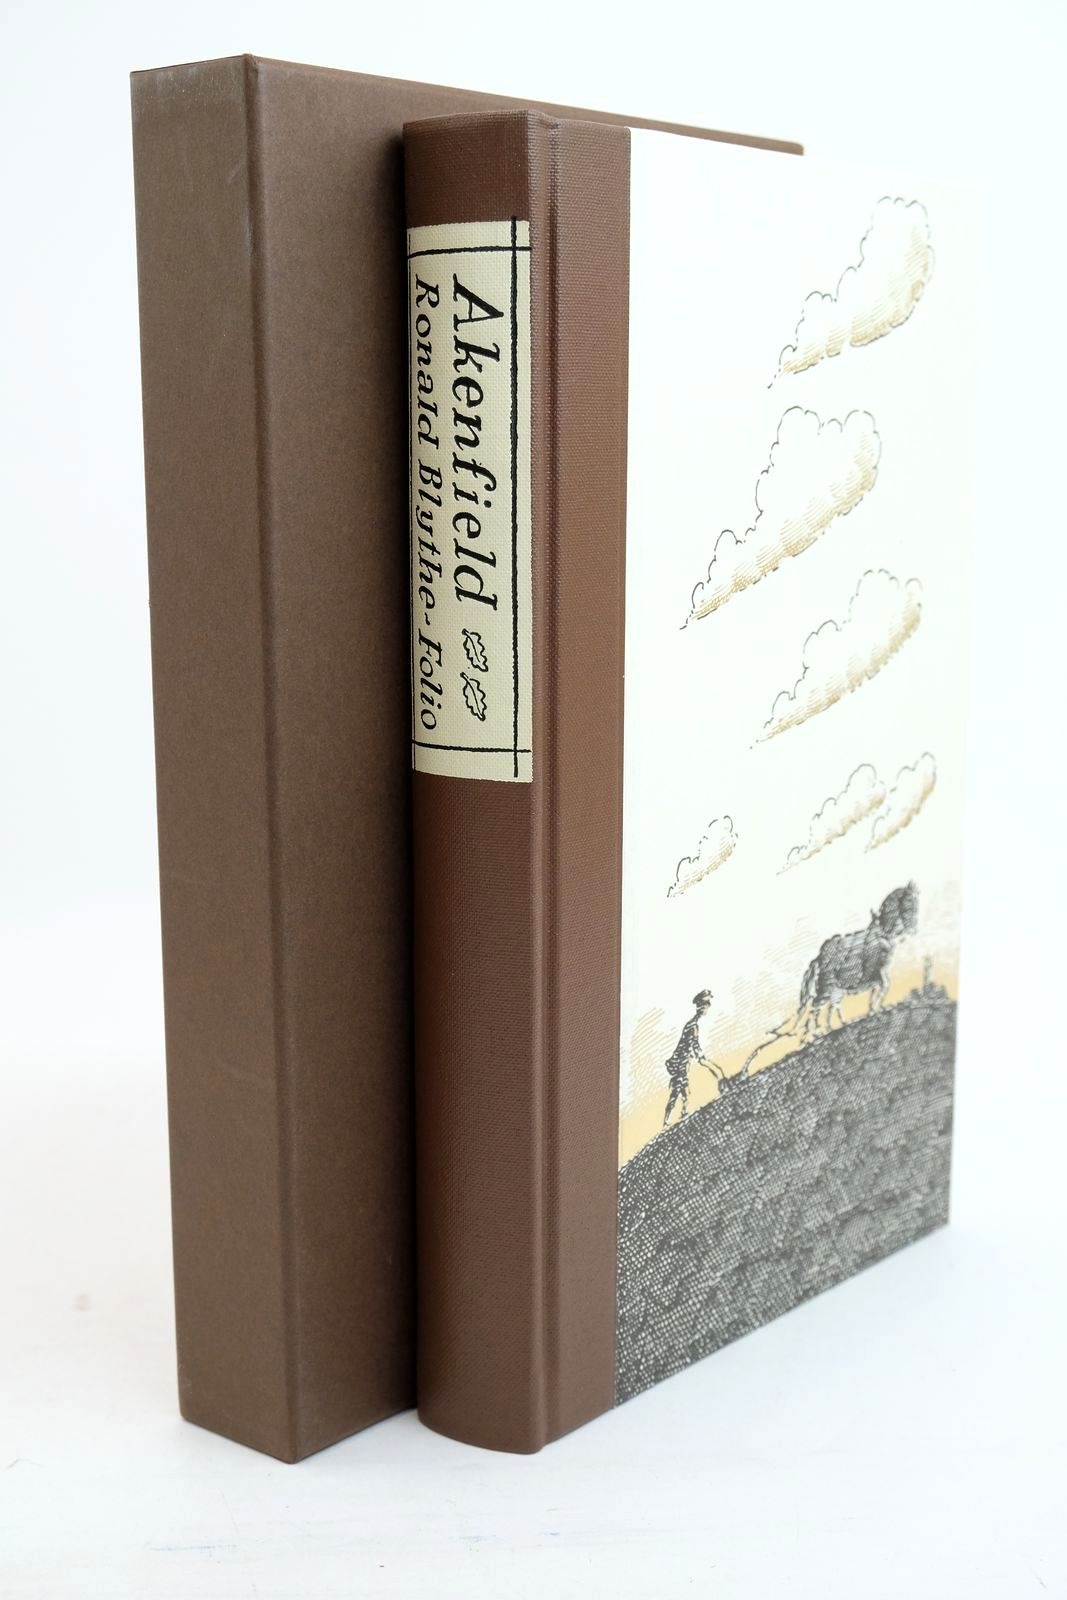 Photo of AKENFIELD: PORTRAIT OF AN ENGLISH VILLAGE written by Blythe, Ronald illustrated by Bailey, Peter published by Folio Society (STOCK CODE: 1321127)  for sale by Stella & Rose's Books